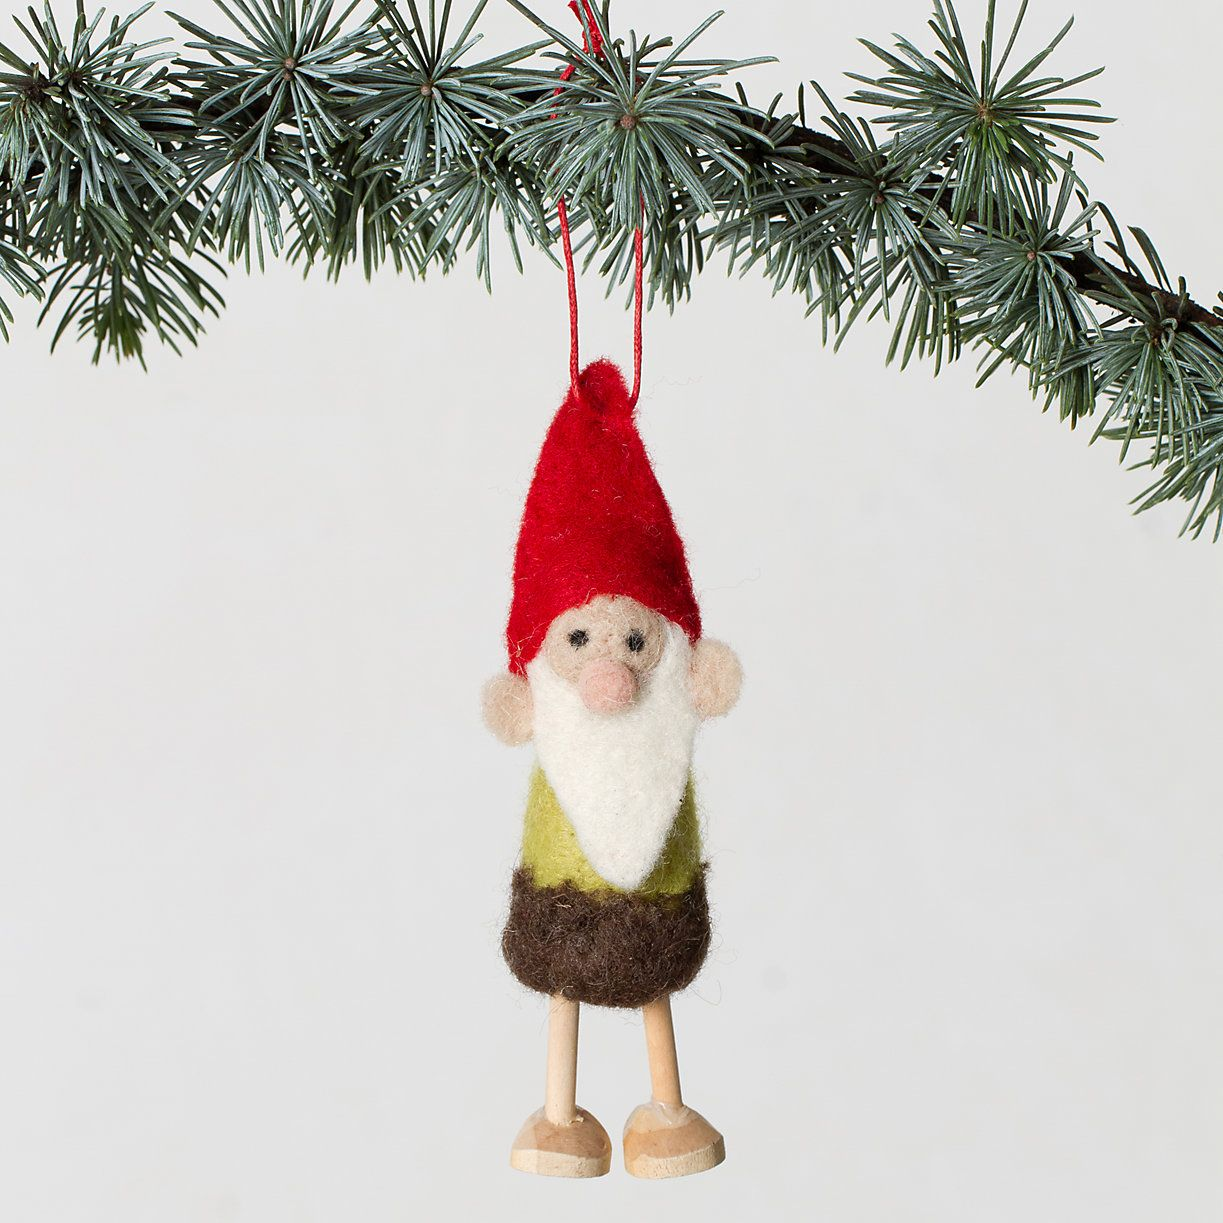 3 Wooly Gnome Ornament In New Shop Holiday At Terrain Christmas Thoughts Ornaments Polar Bear Ornaments